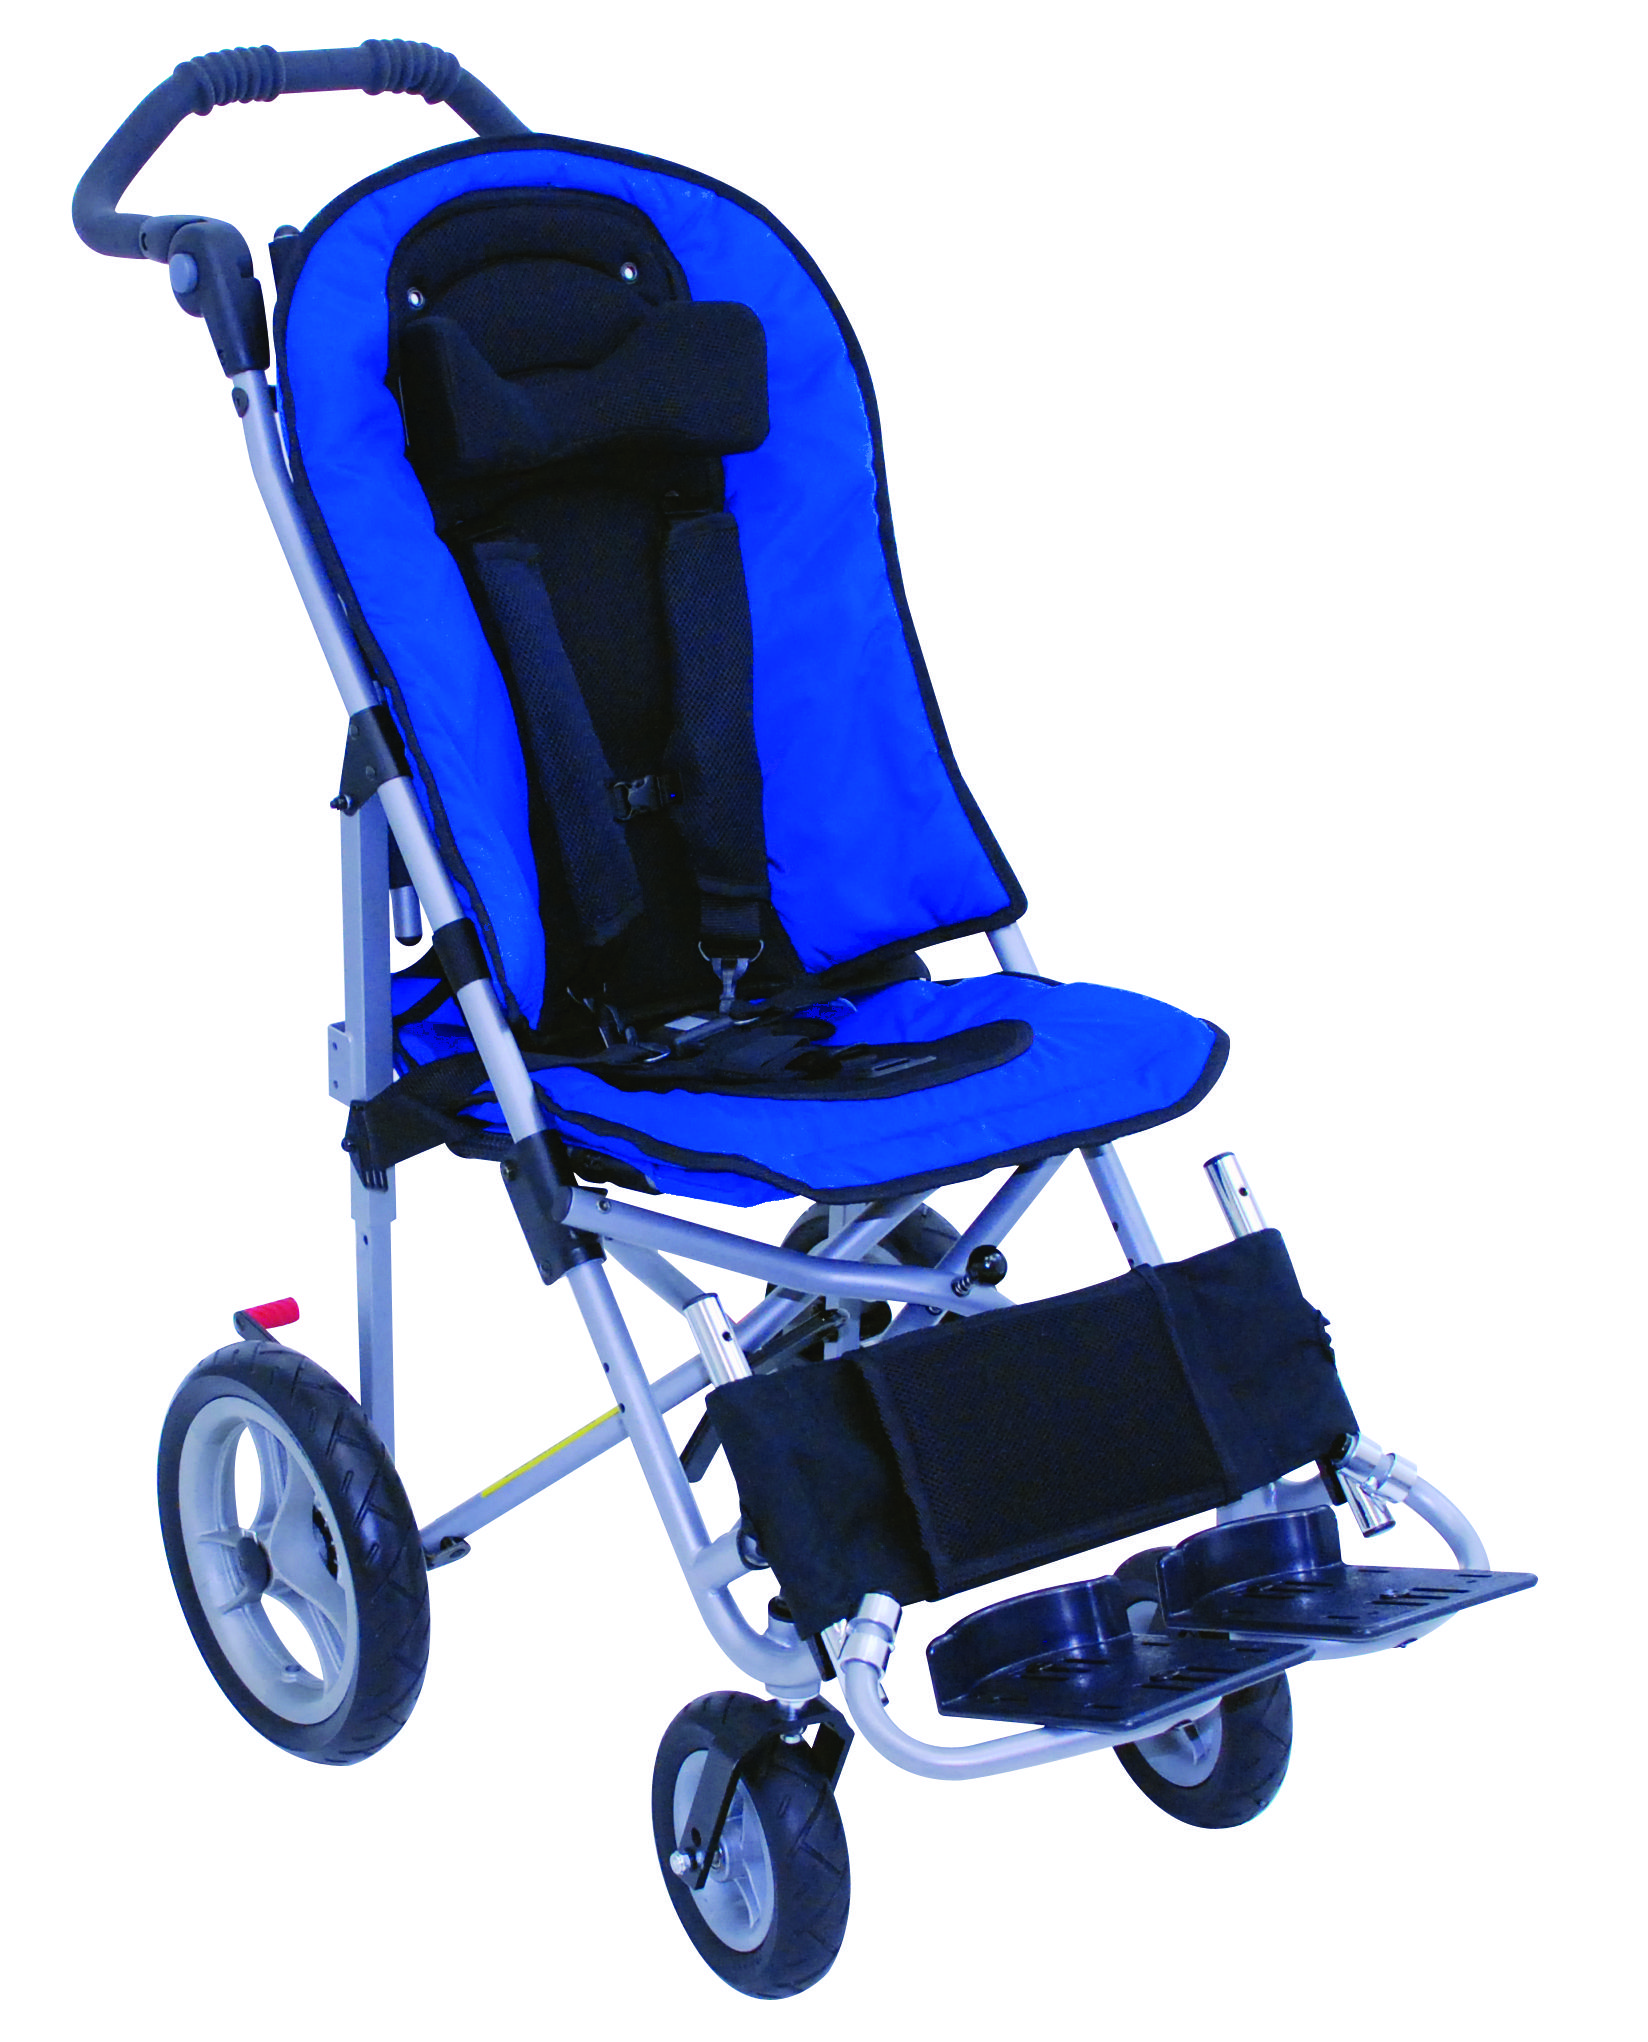 Rehab Mangement Convaid Spotlights Pediatric Wheelchair